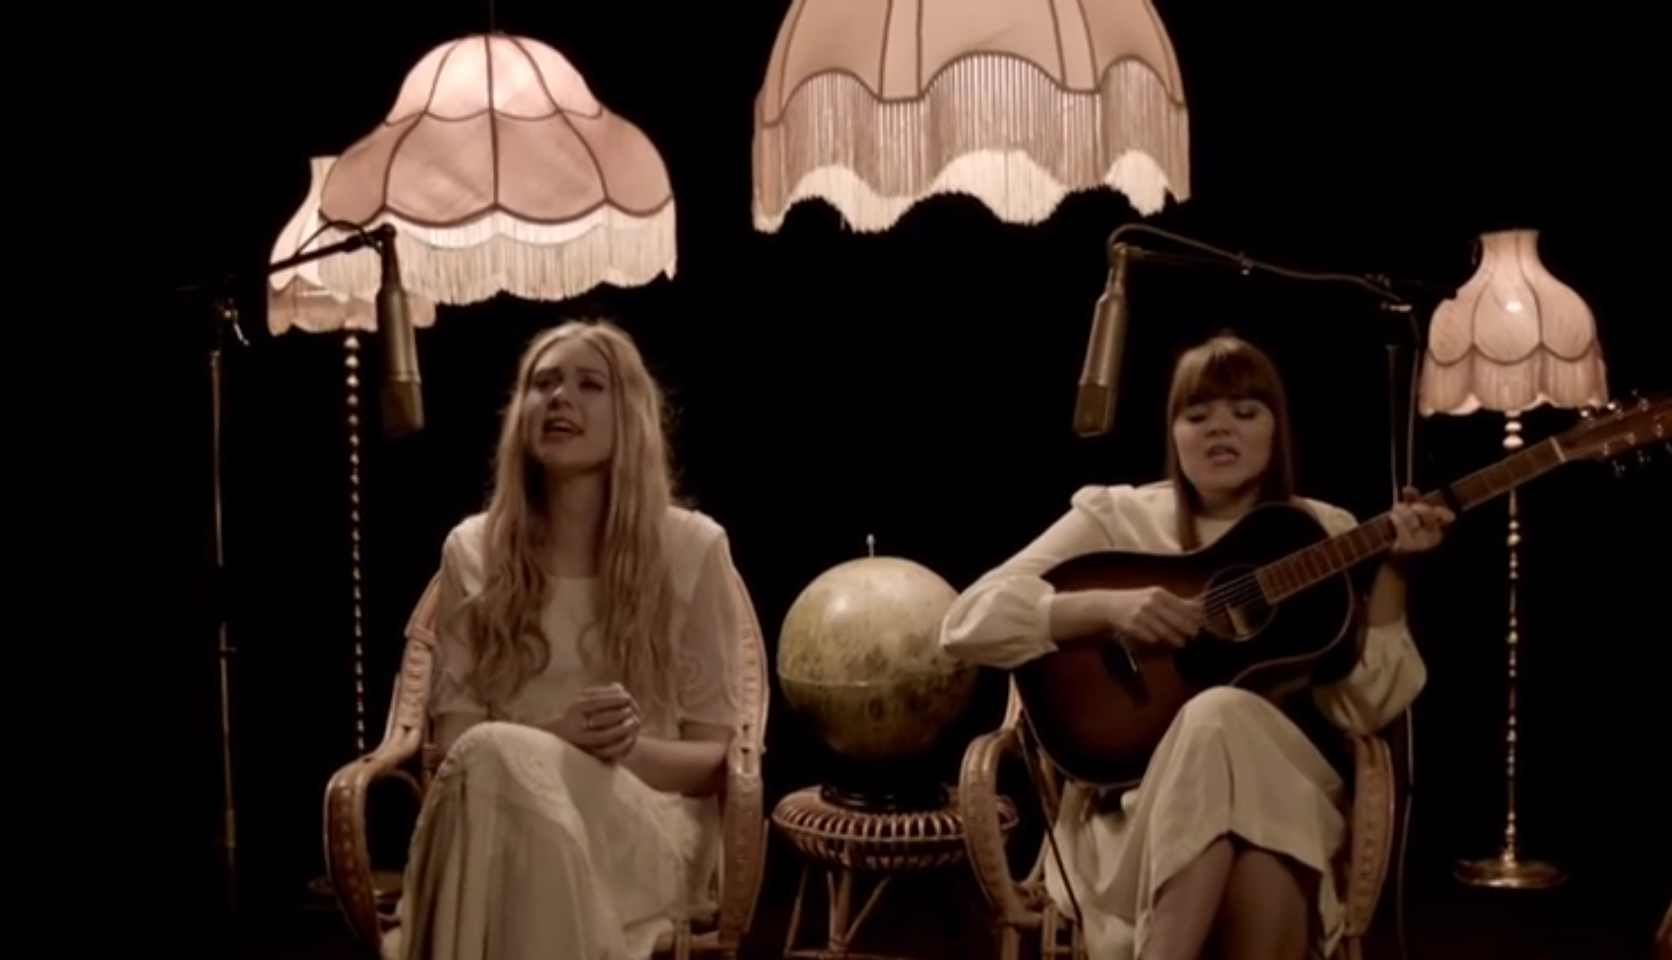 First Aid Kit - Master Pretender